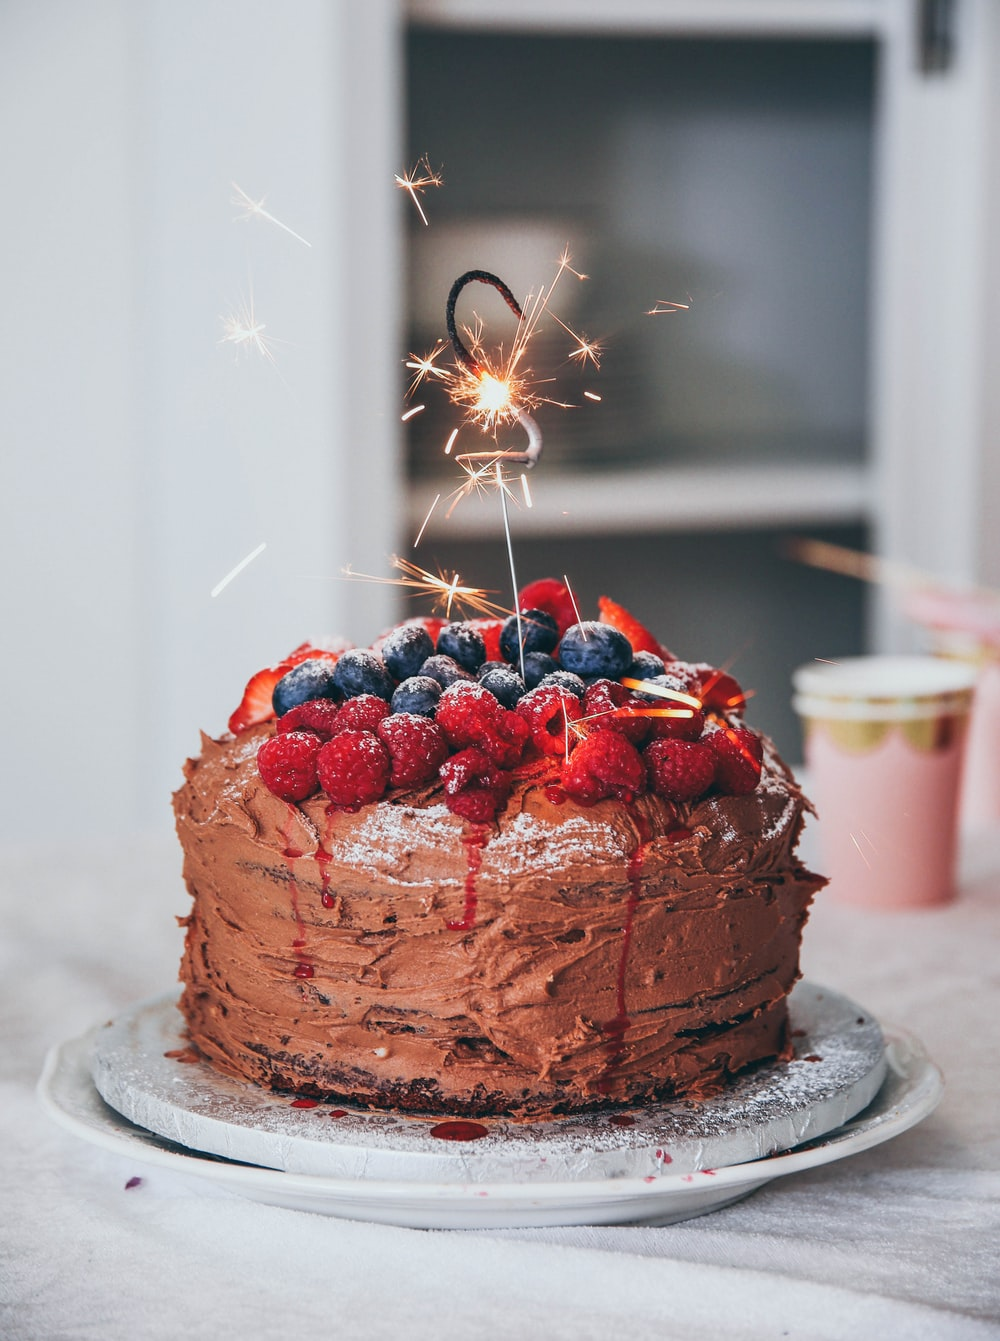 100 Birthday Cake Pictures Download Free Images Stock Photos On Unsplash